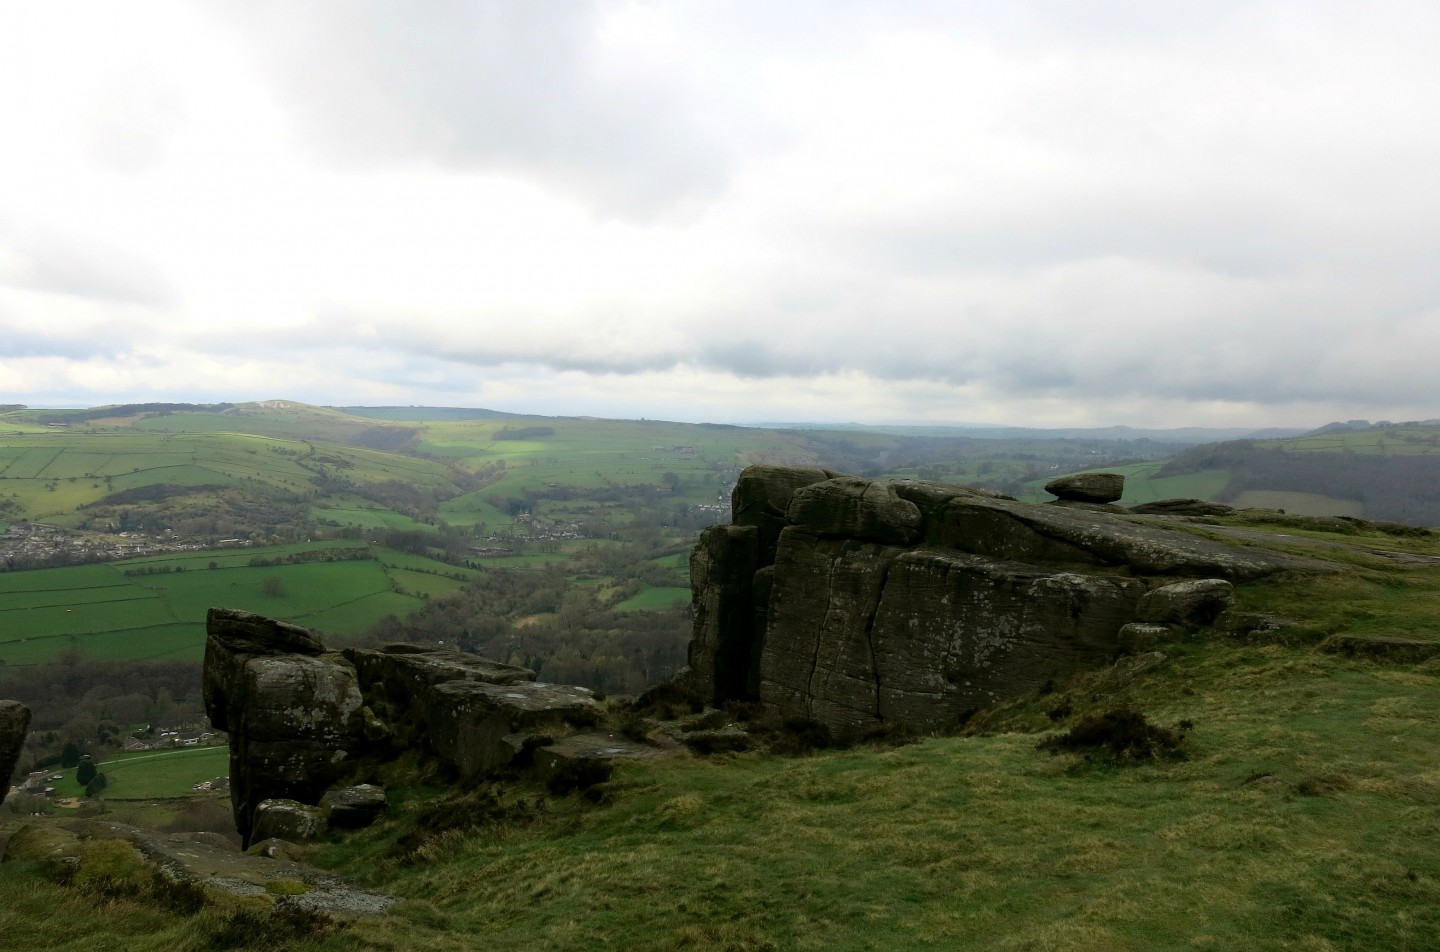 The rugged landscape of the South Peak District, England.